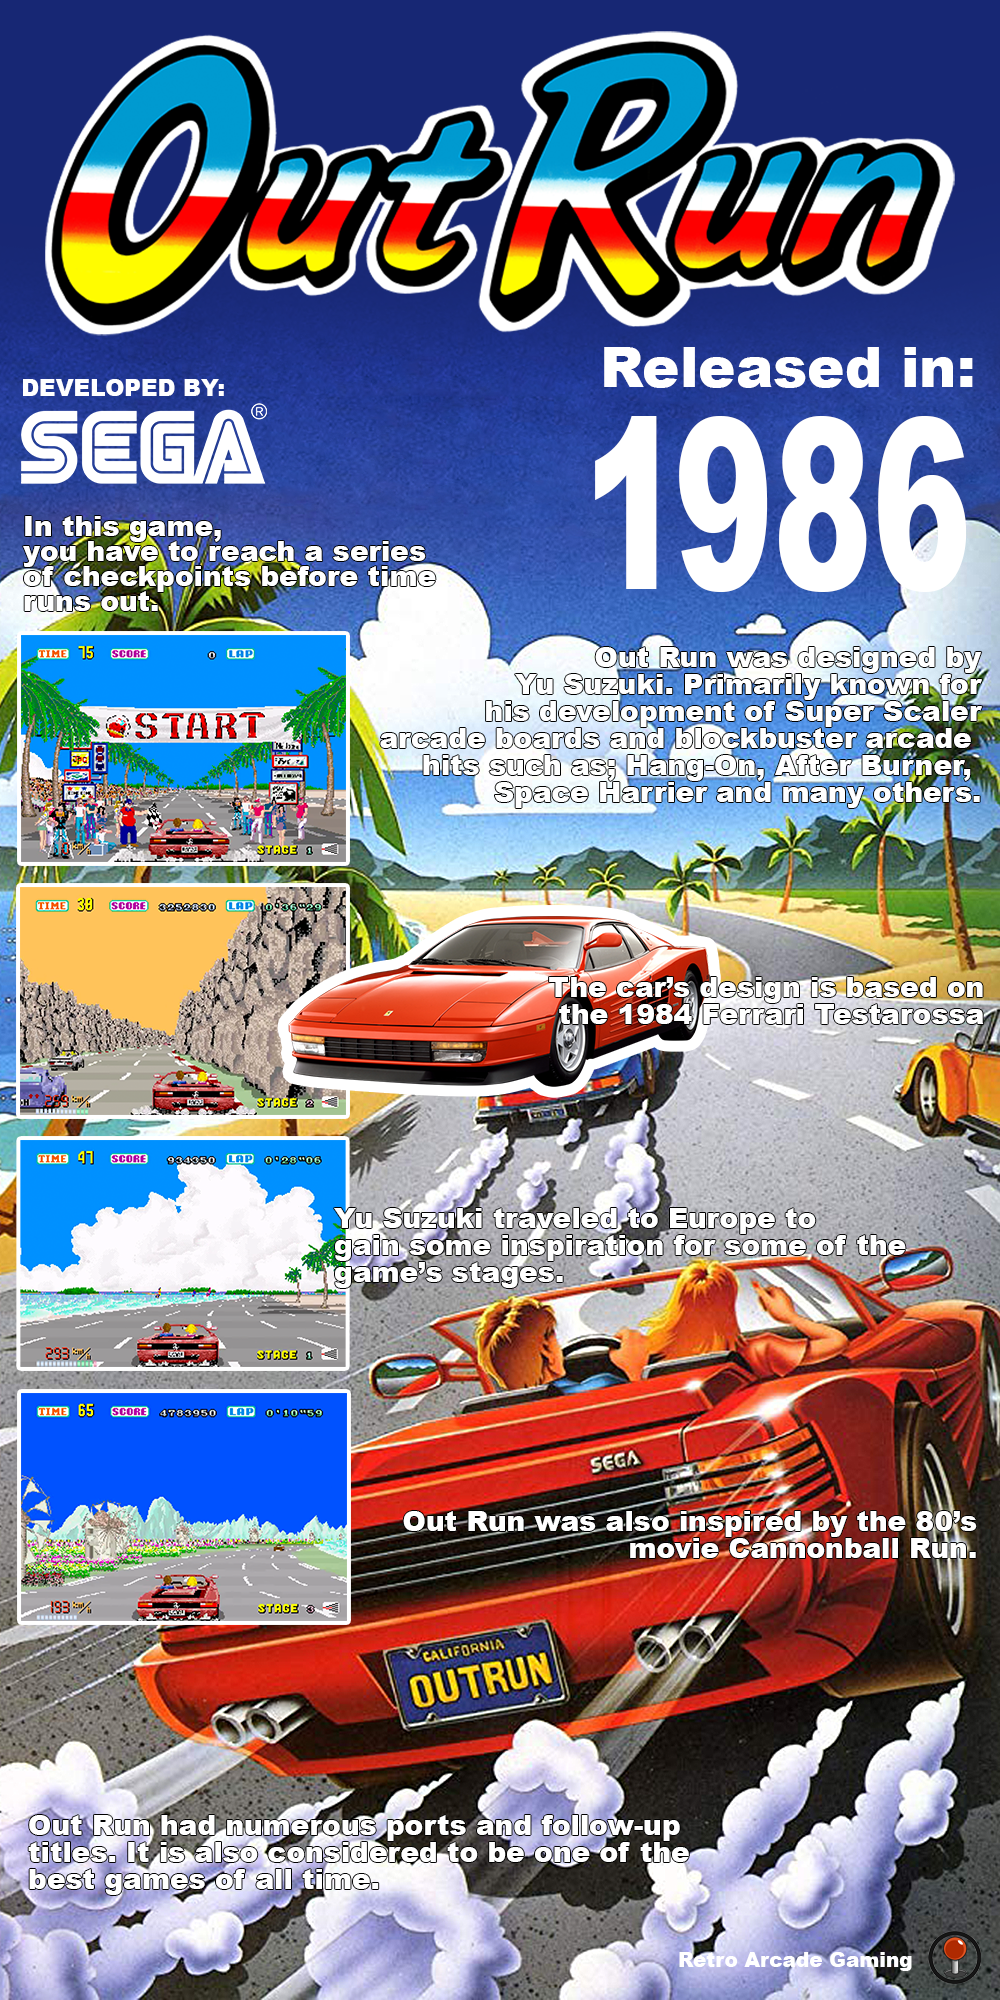 Out Run was developed and released by Sega in 1986